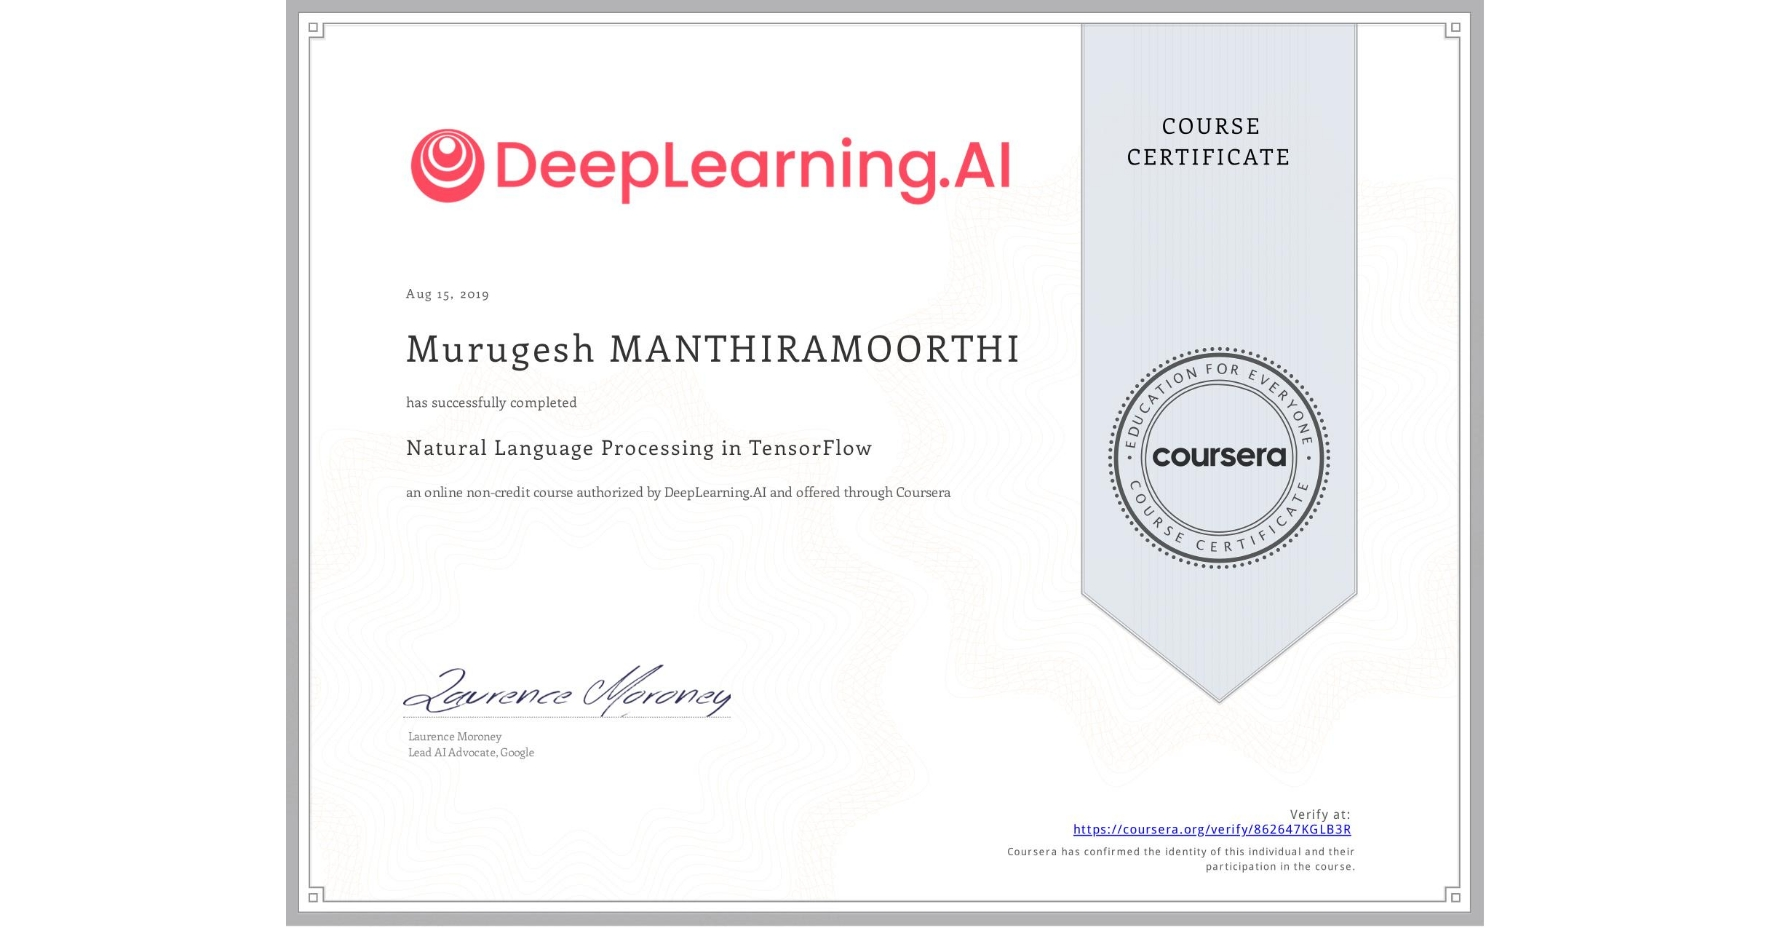 View certificate for Murugesh Manthiramoorthi, Natural Language Processing in TensorFlow, an online non-credit course authorized by DeepLearning.AI and offered through Coursera